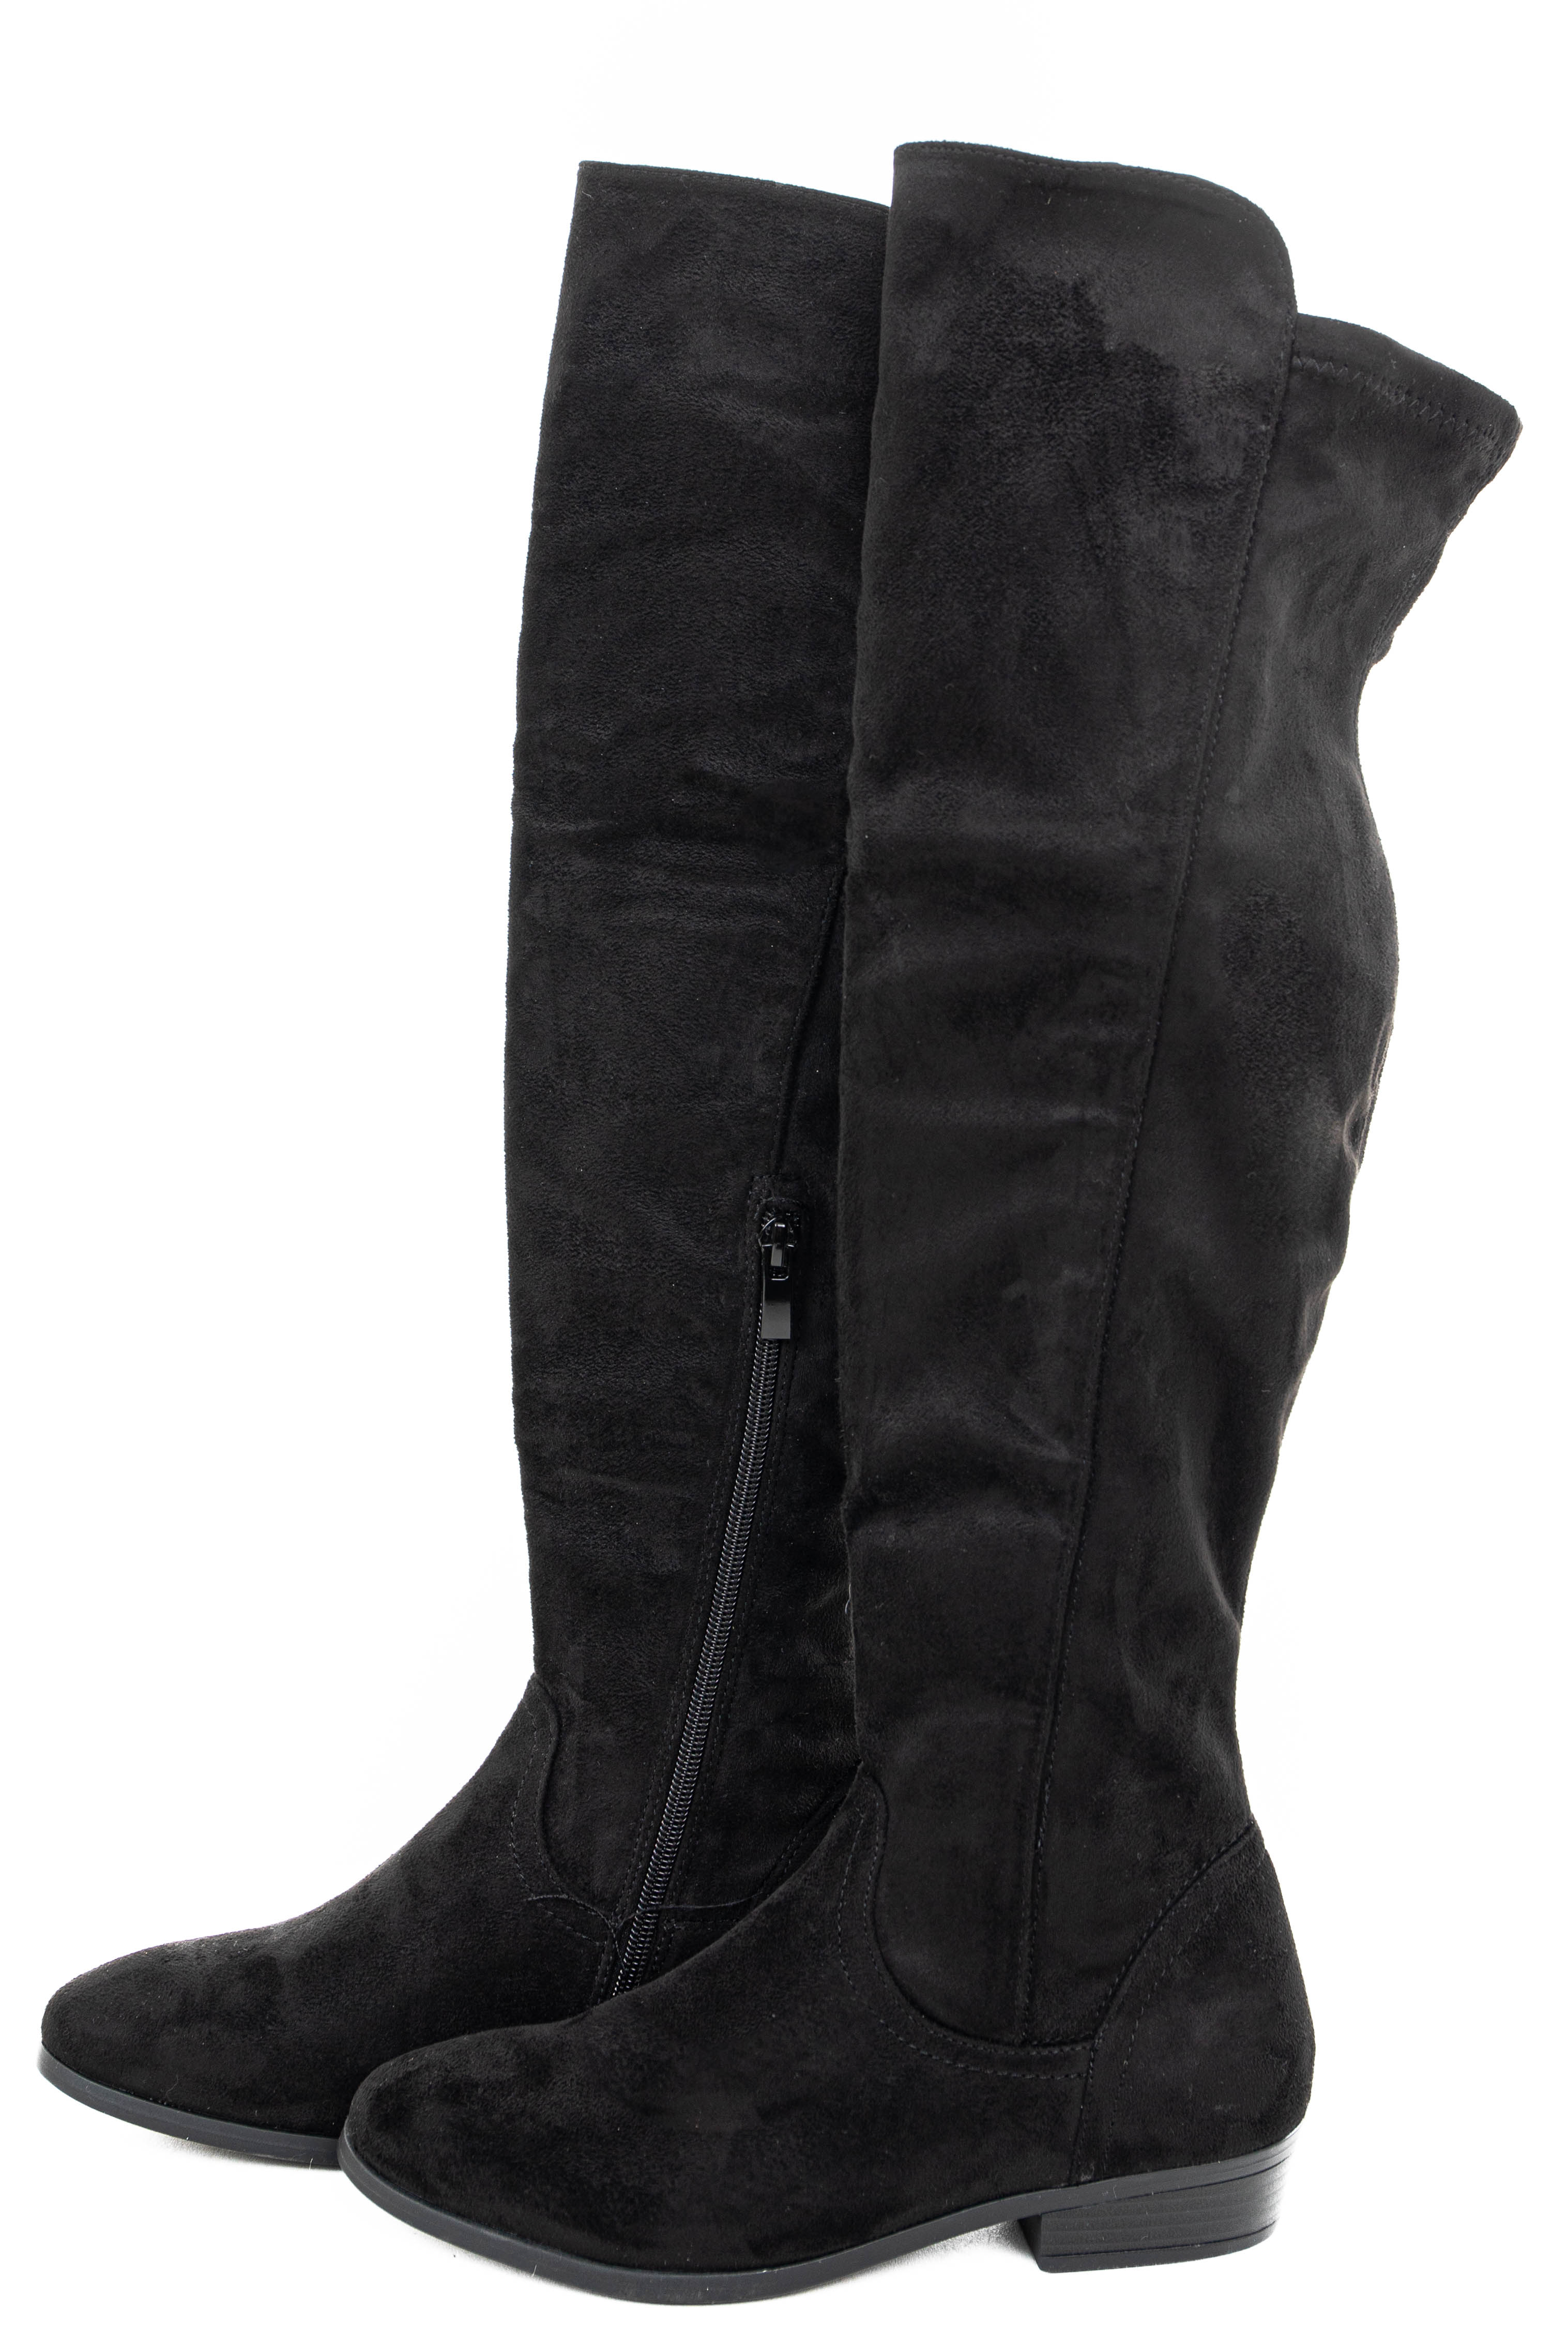 Black Faux Suede Knee High Boots with Small Heel